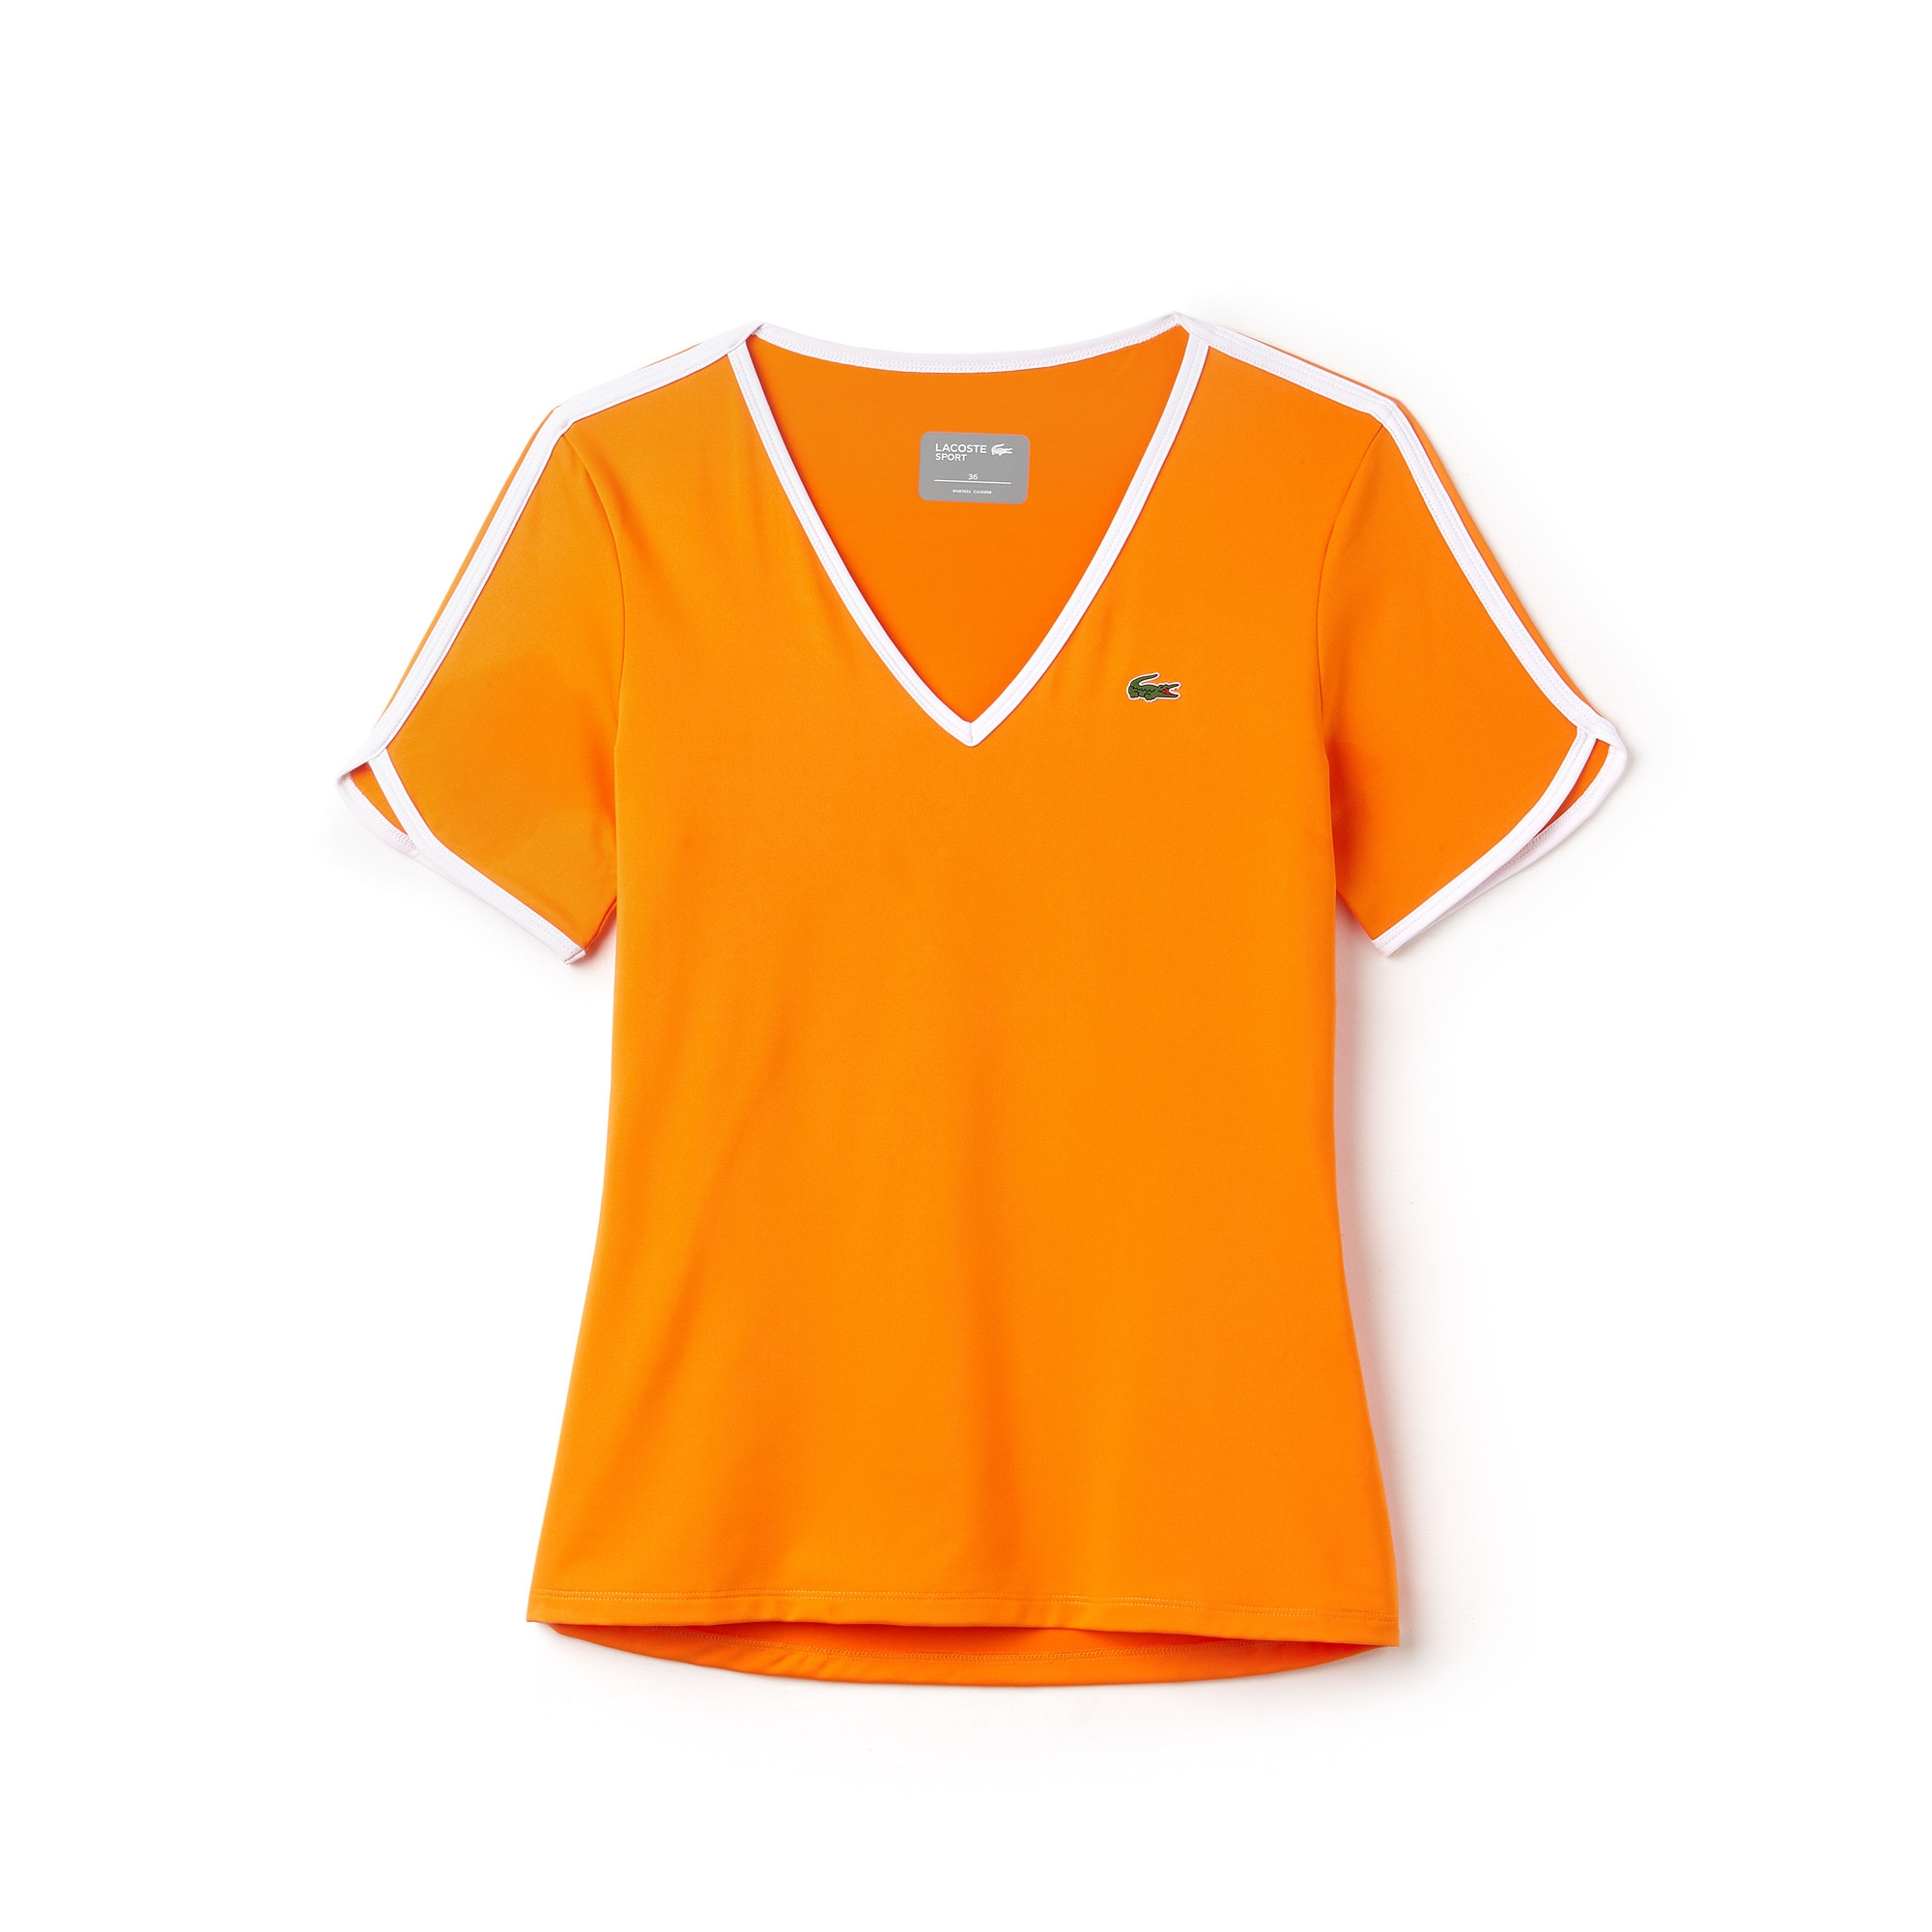 Women's Lacoste SPORT V-neck Stretch Tech Jersey Tennis T-shirt